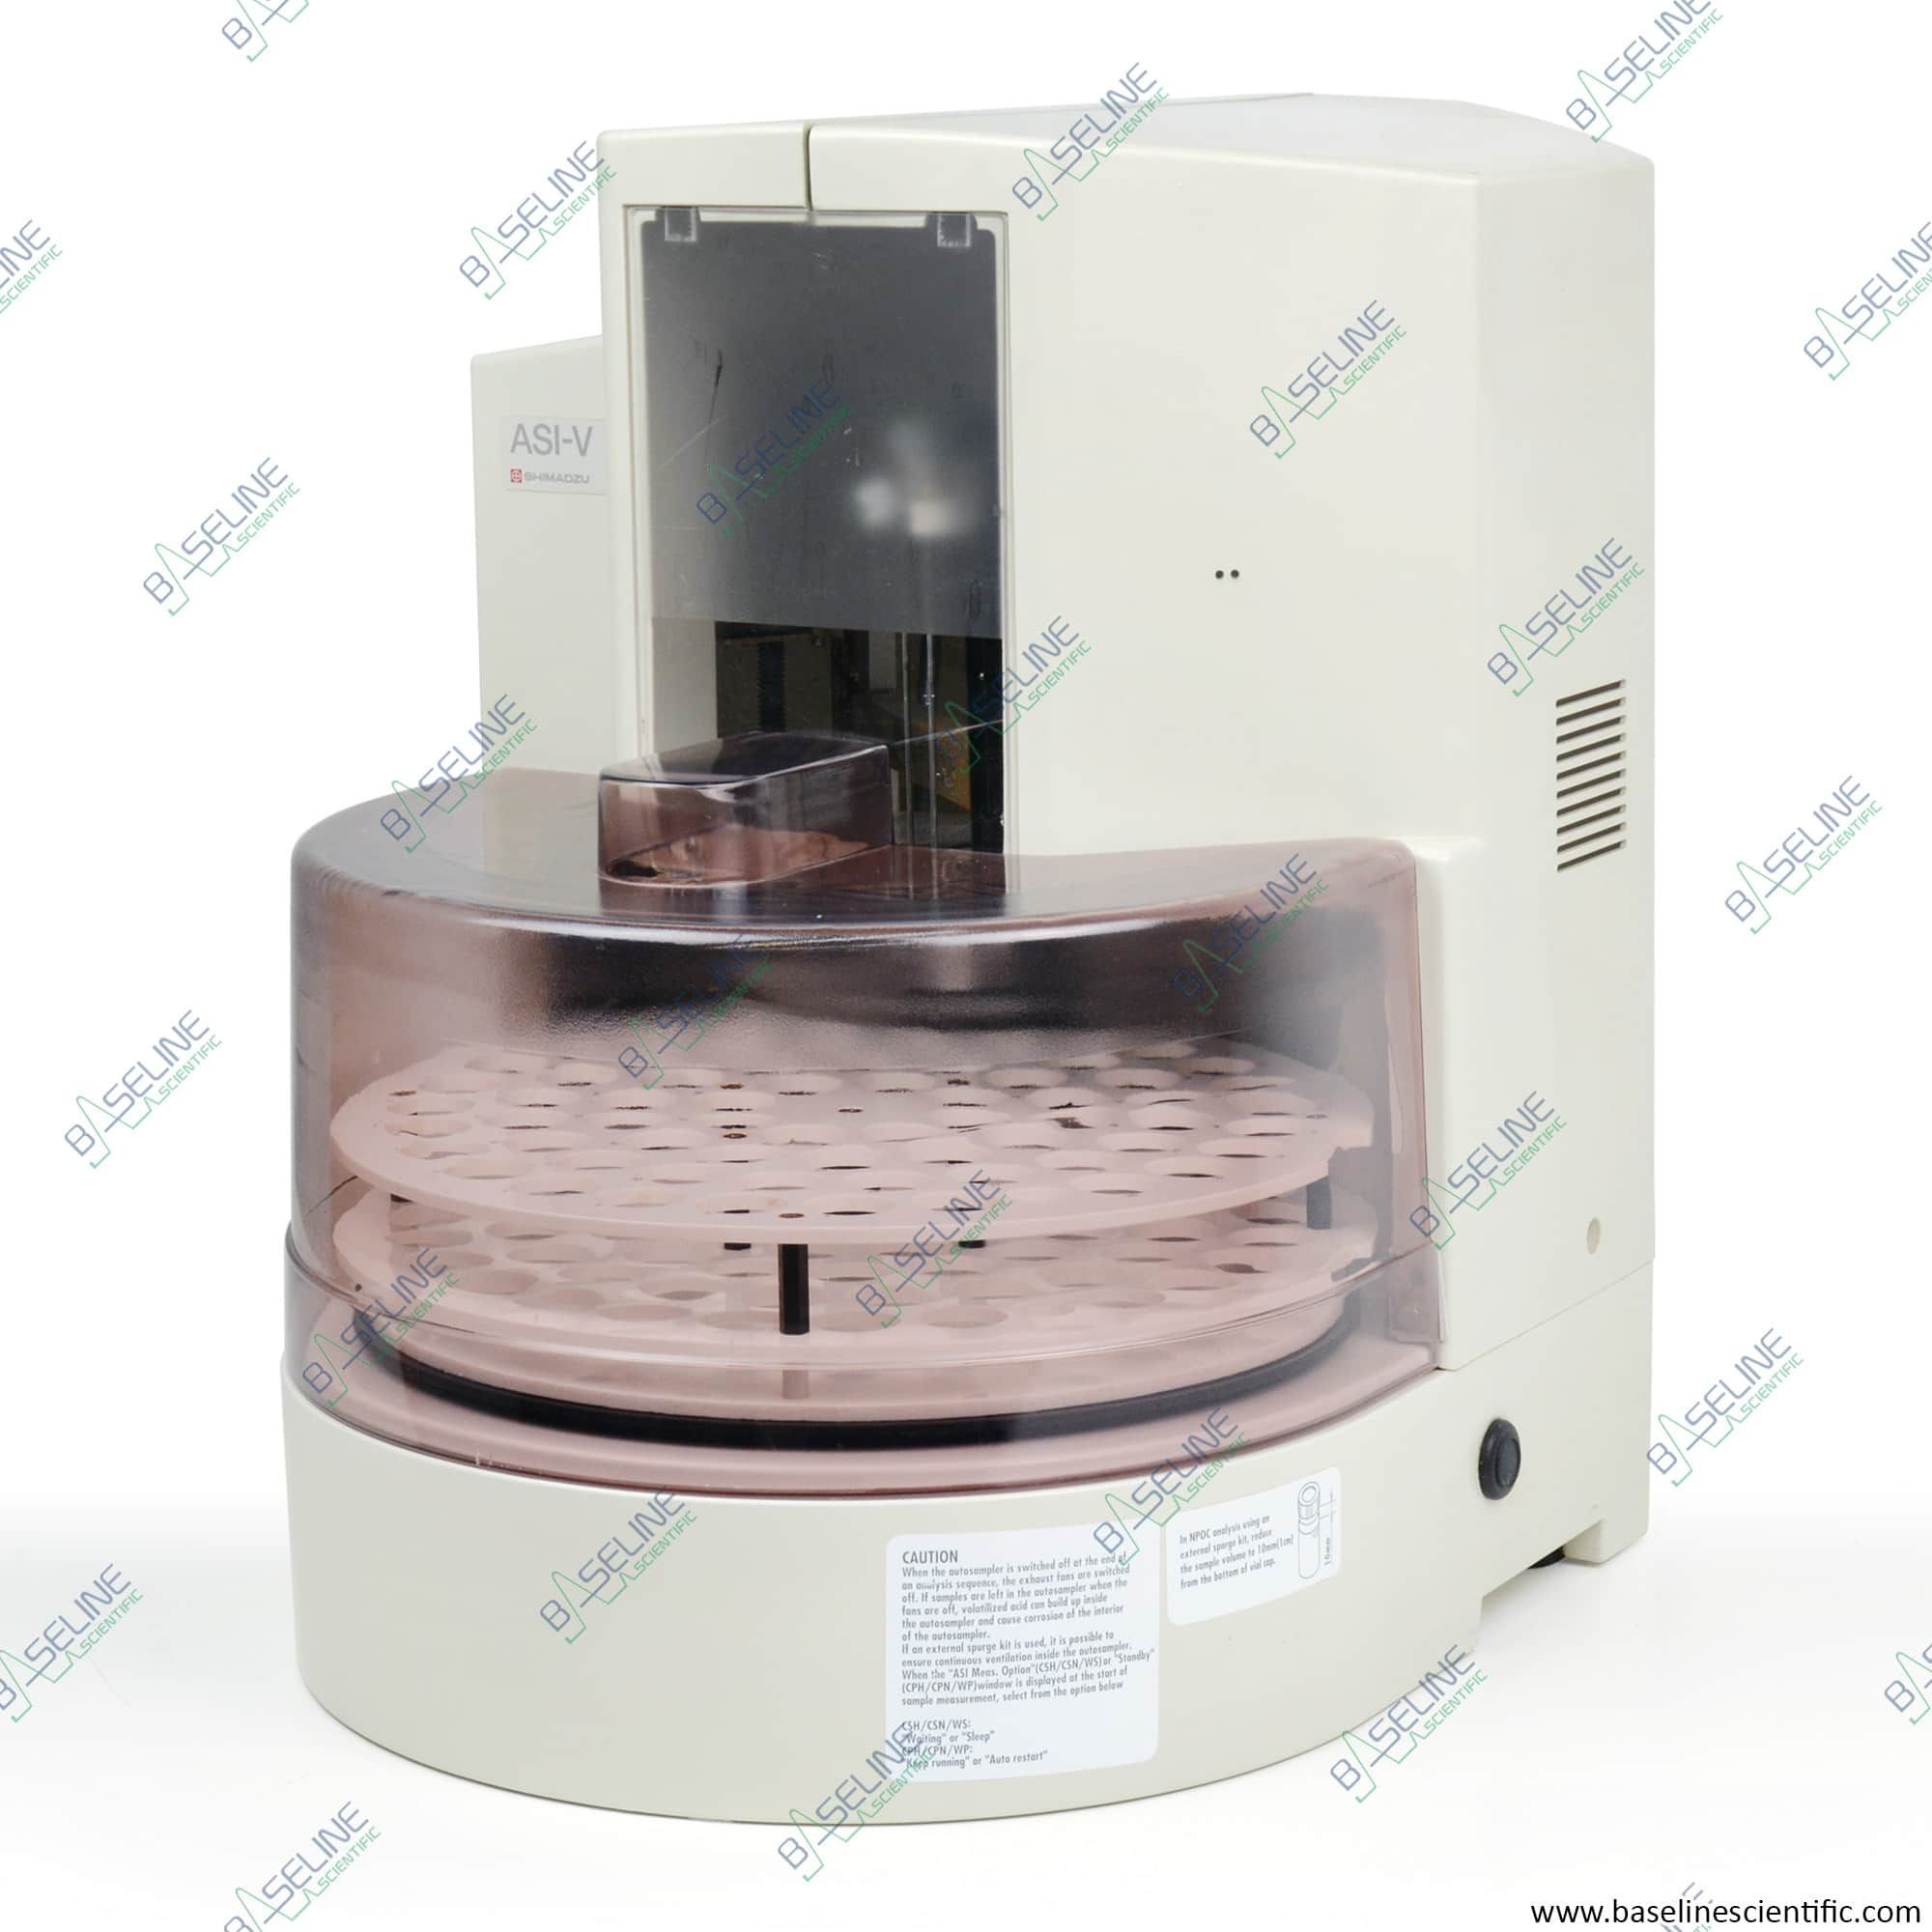 Refurbished Shimadzu TOC ASI-V Autosampler with ONE YEAR WARRANTY